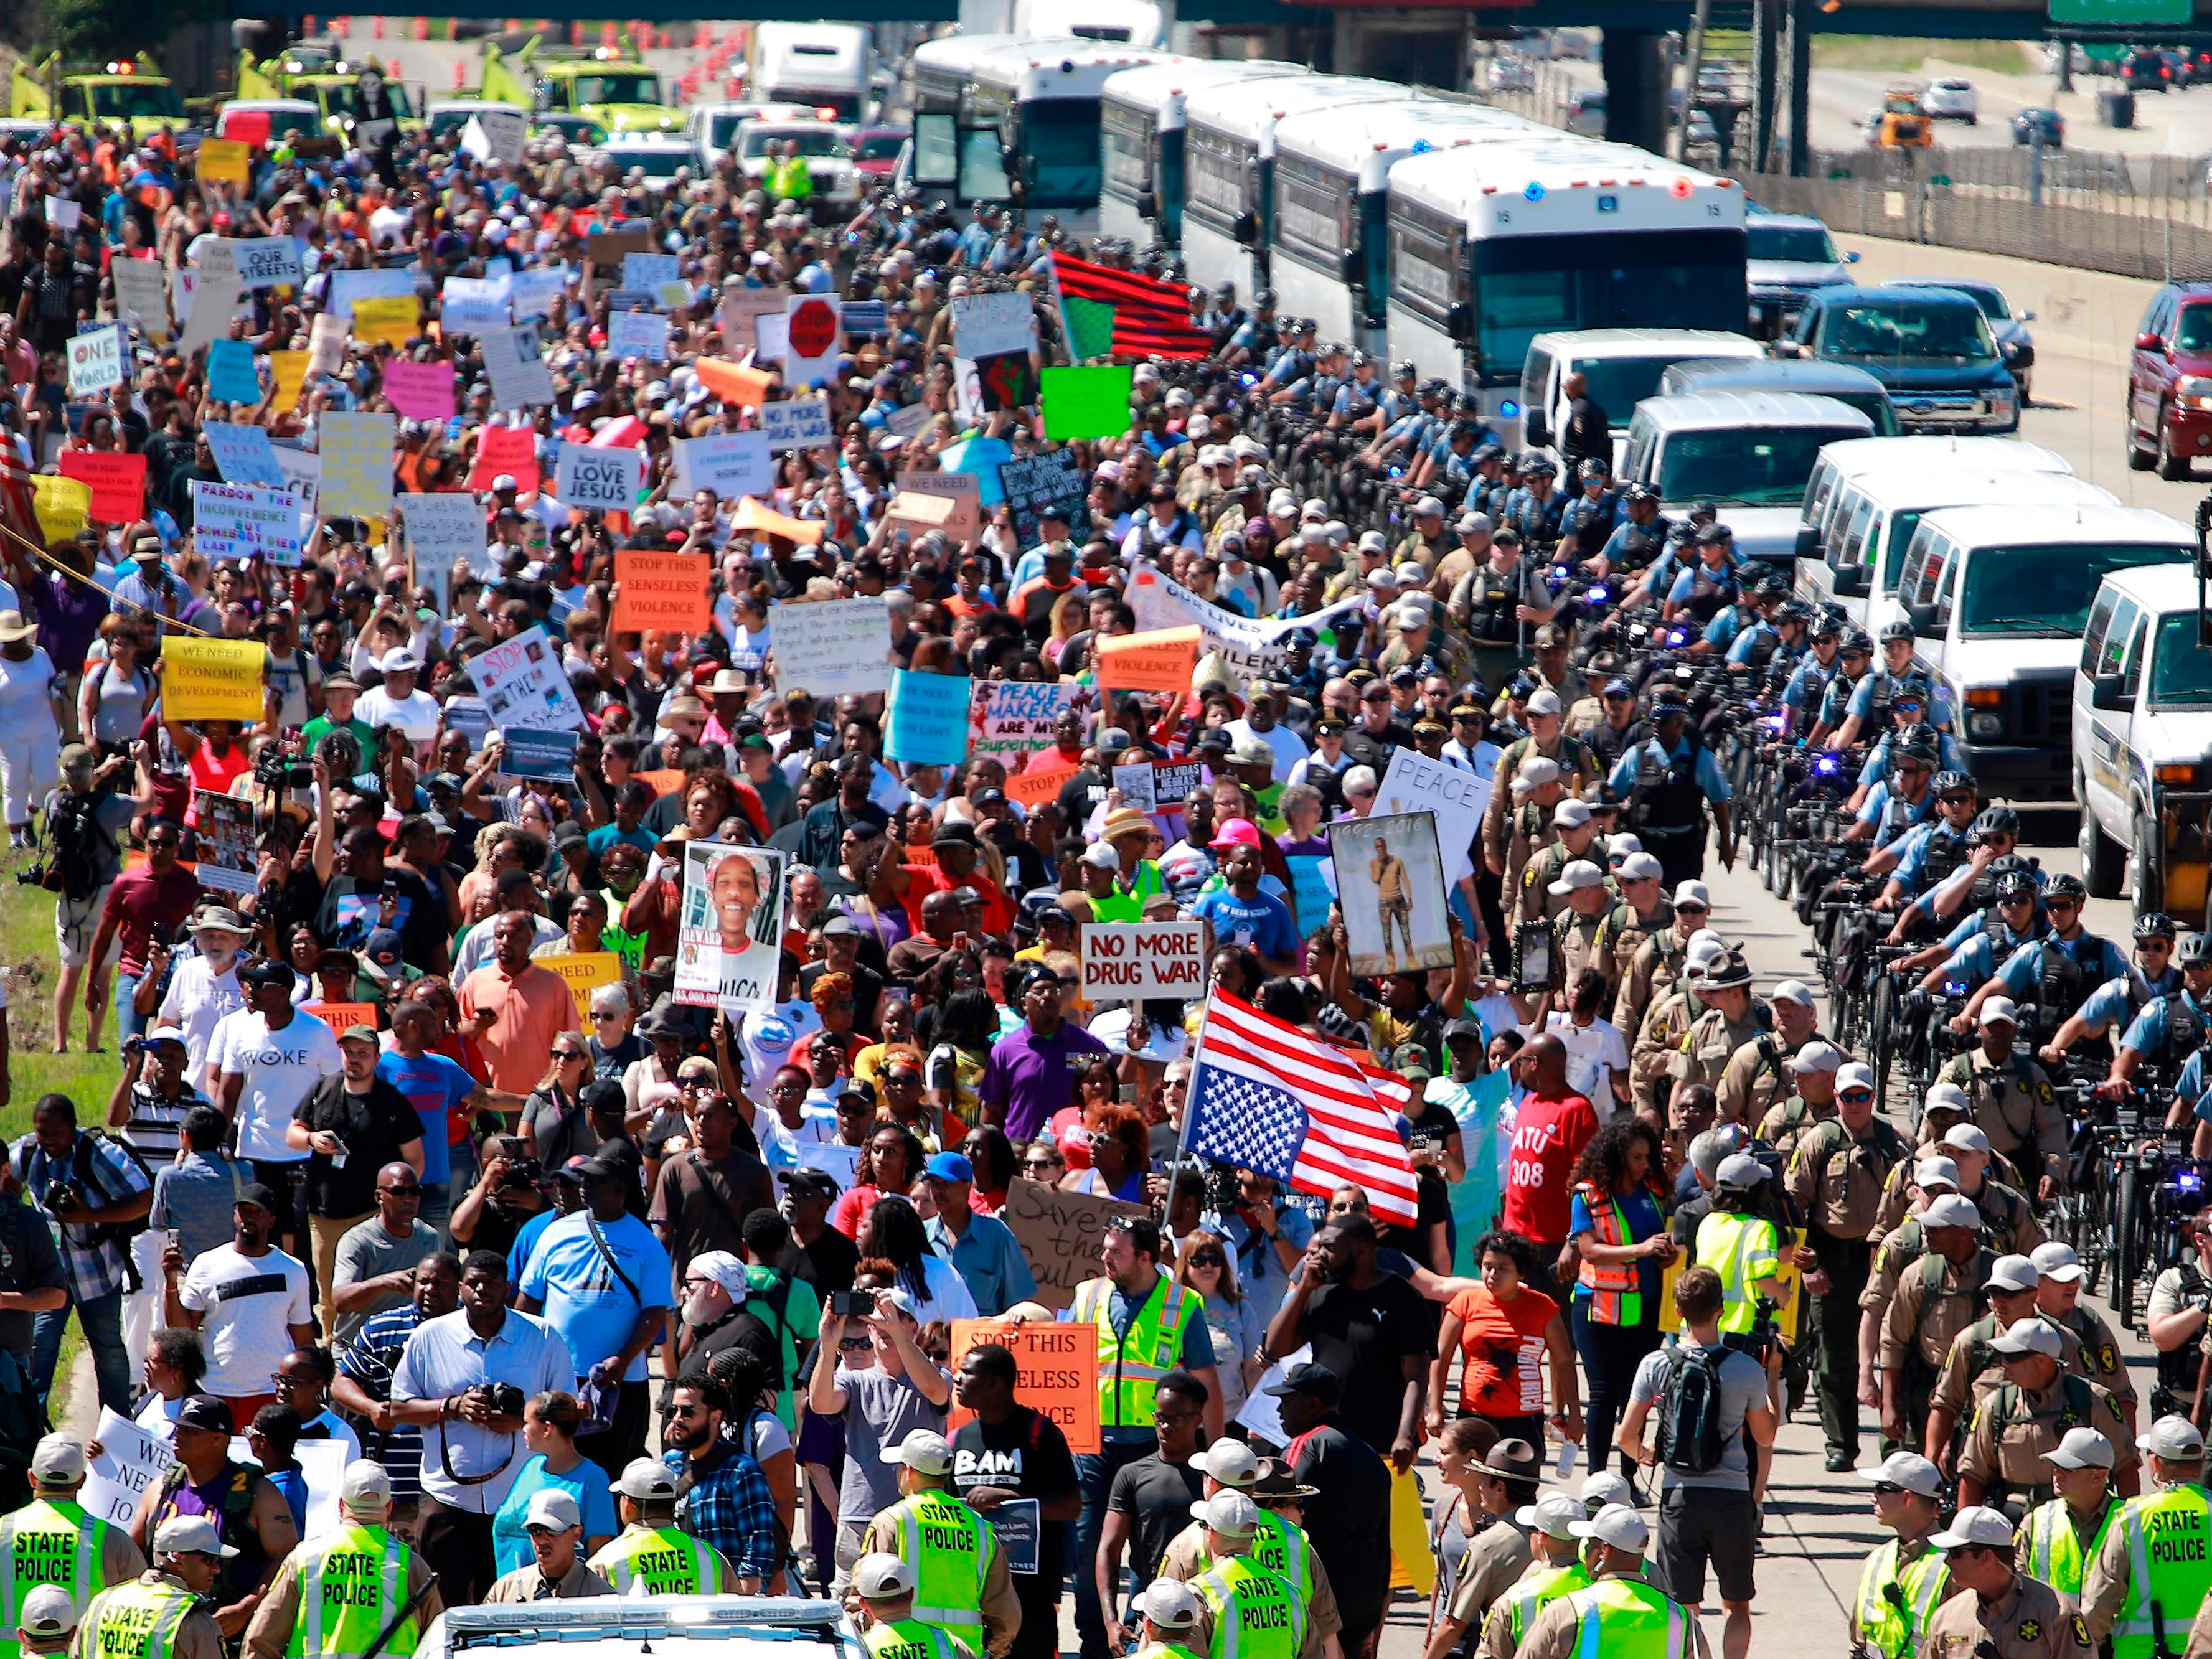 Protestors shut down the Dan Ryan Expressway during an anti-violence protest calling for common sense gun laws, July 7, 2018 in Chicago.